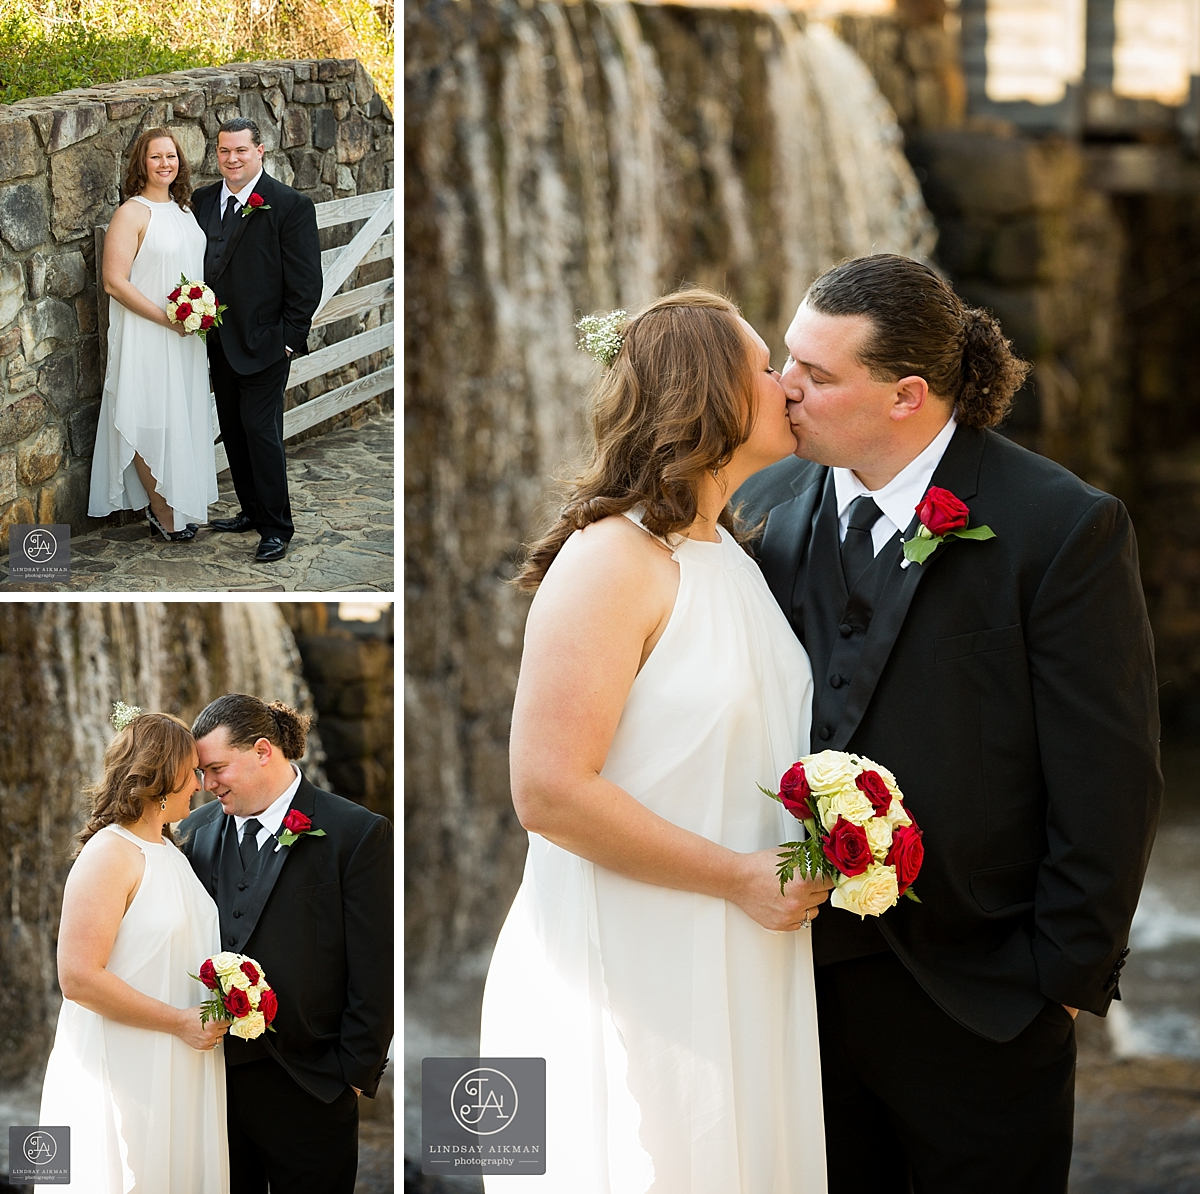 Wedding at Historic Yates Mill, Raleigh